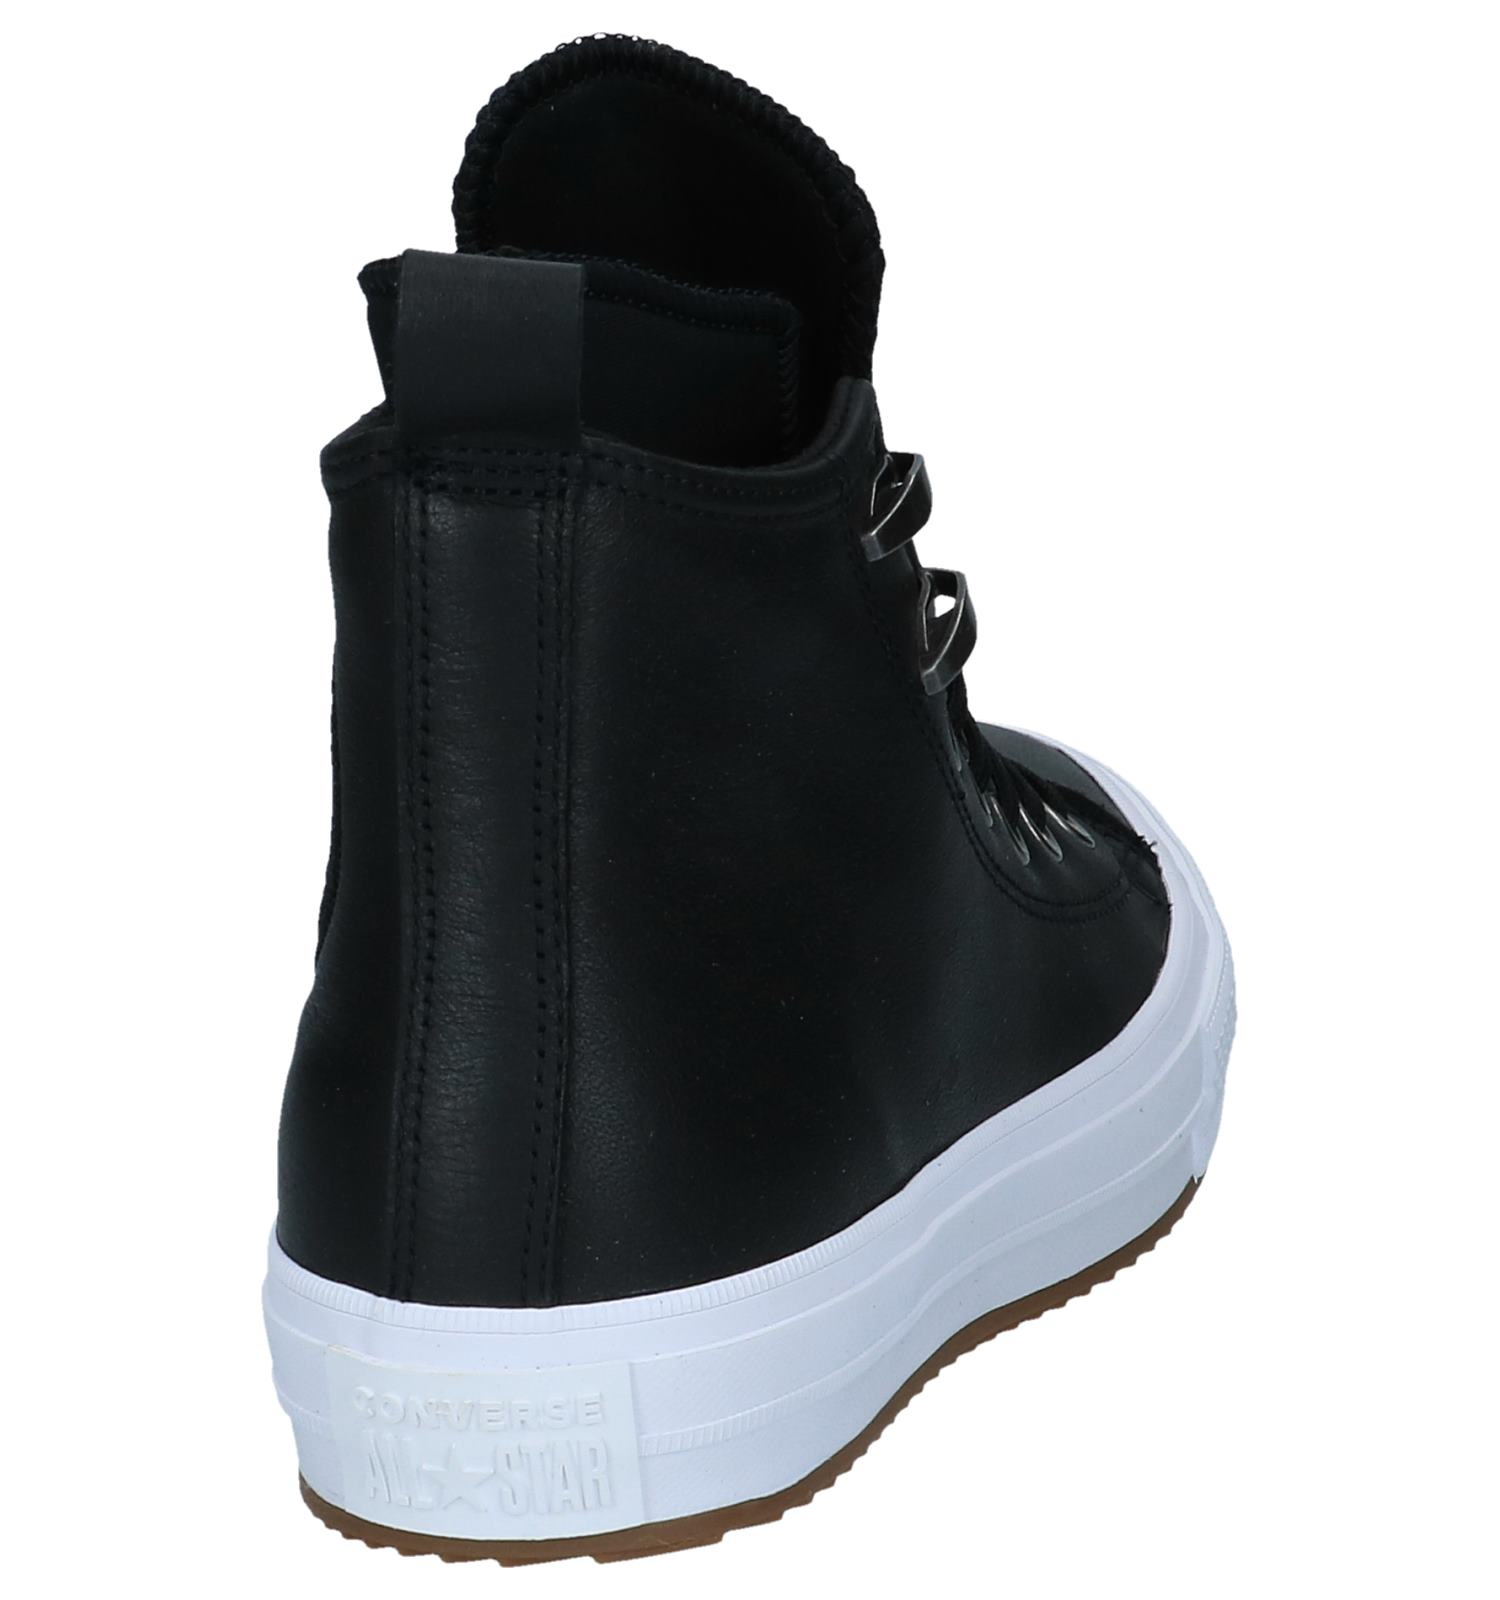 Sneaker All Boot Slip Converse Wp Star Zwarte on T1FKuJc3l